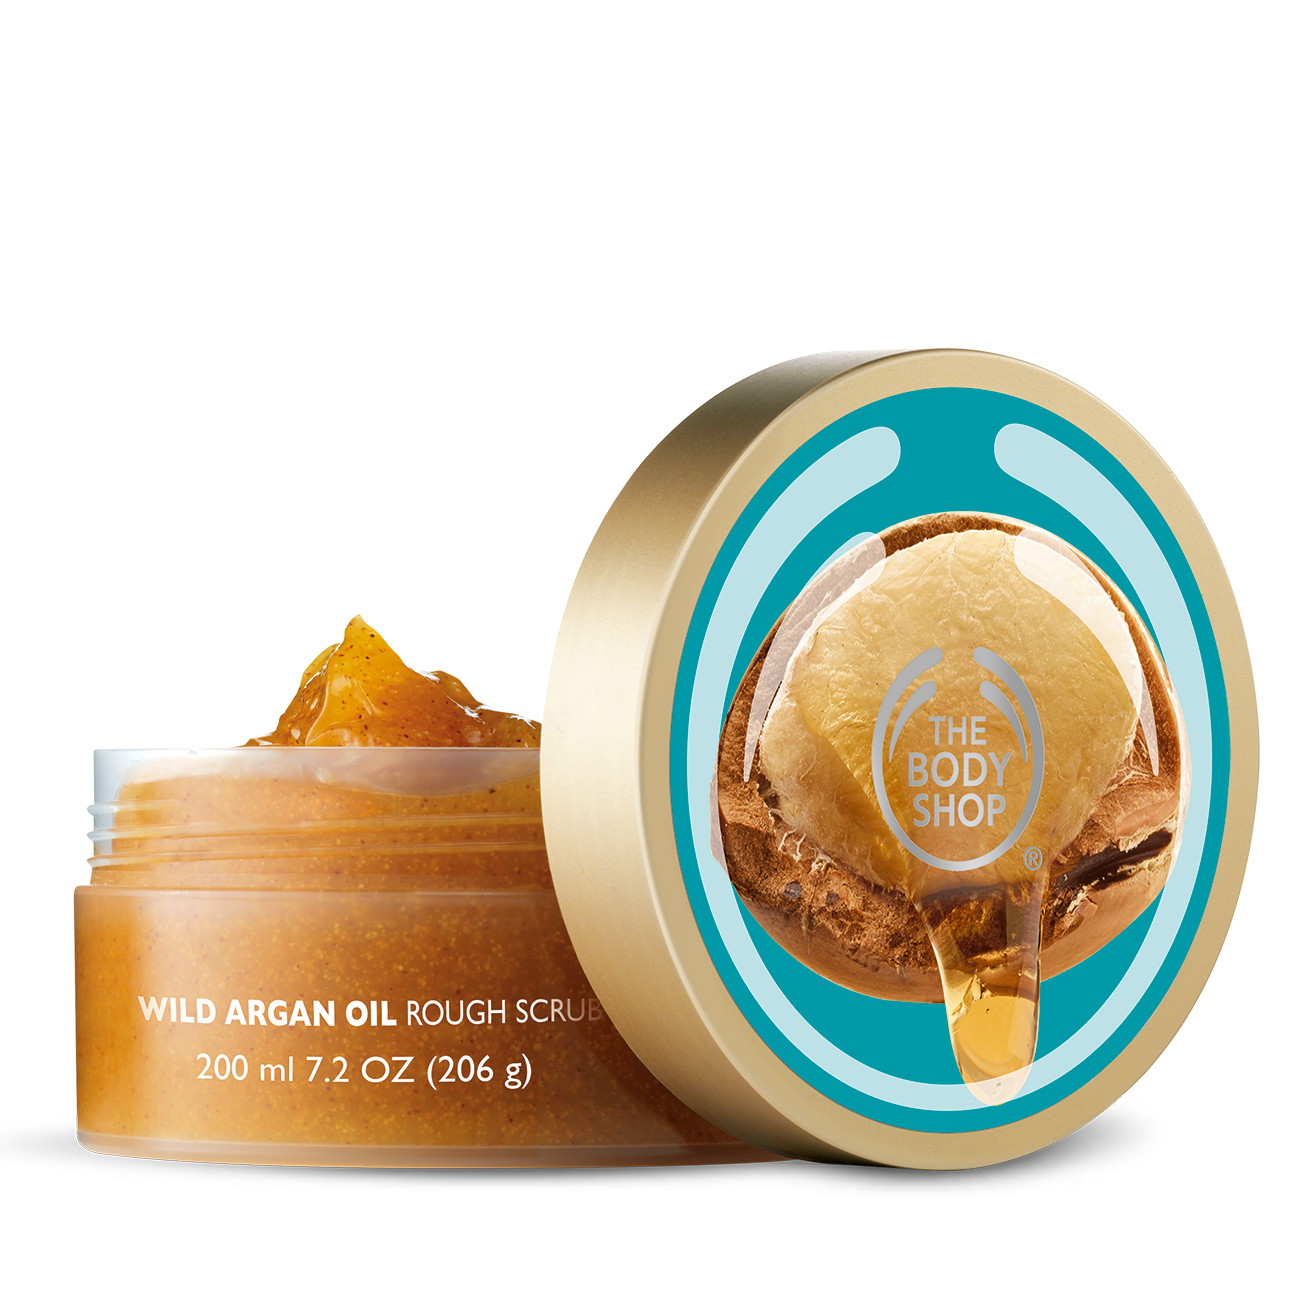 Wild Argan Oil Collection from The Body Shop- Review by ONE little MOMMA